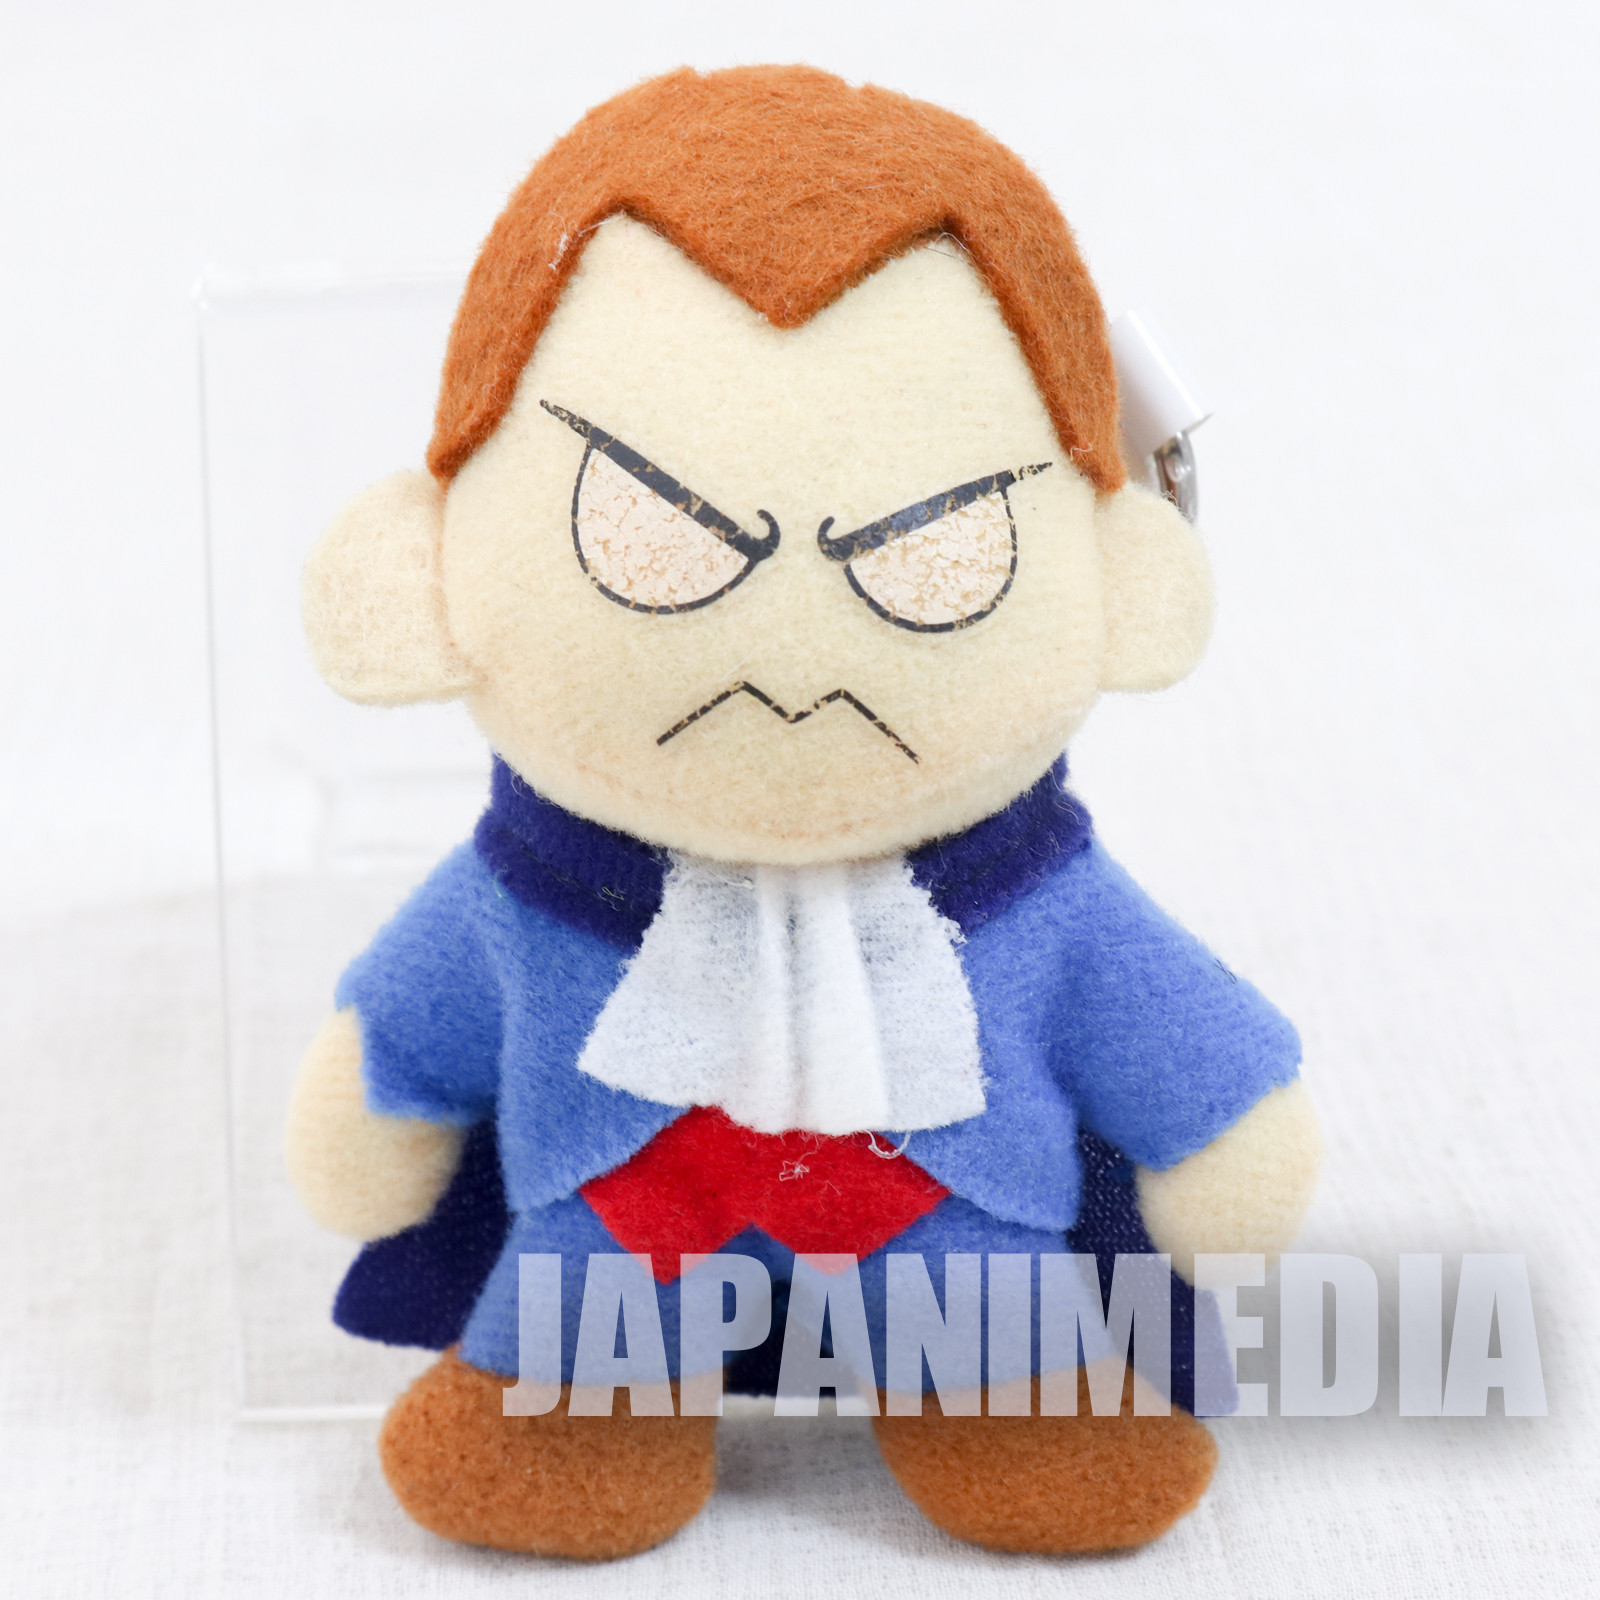 Darkstalkers (Vampire) Demitri Small Plush Doll Keychain JAPAN HUNTER SAVIOR